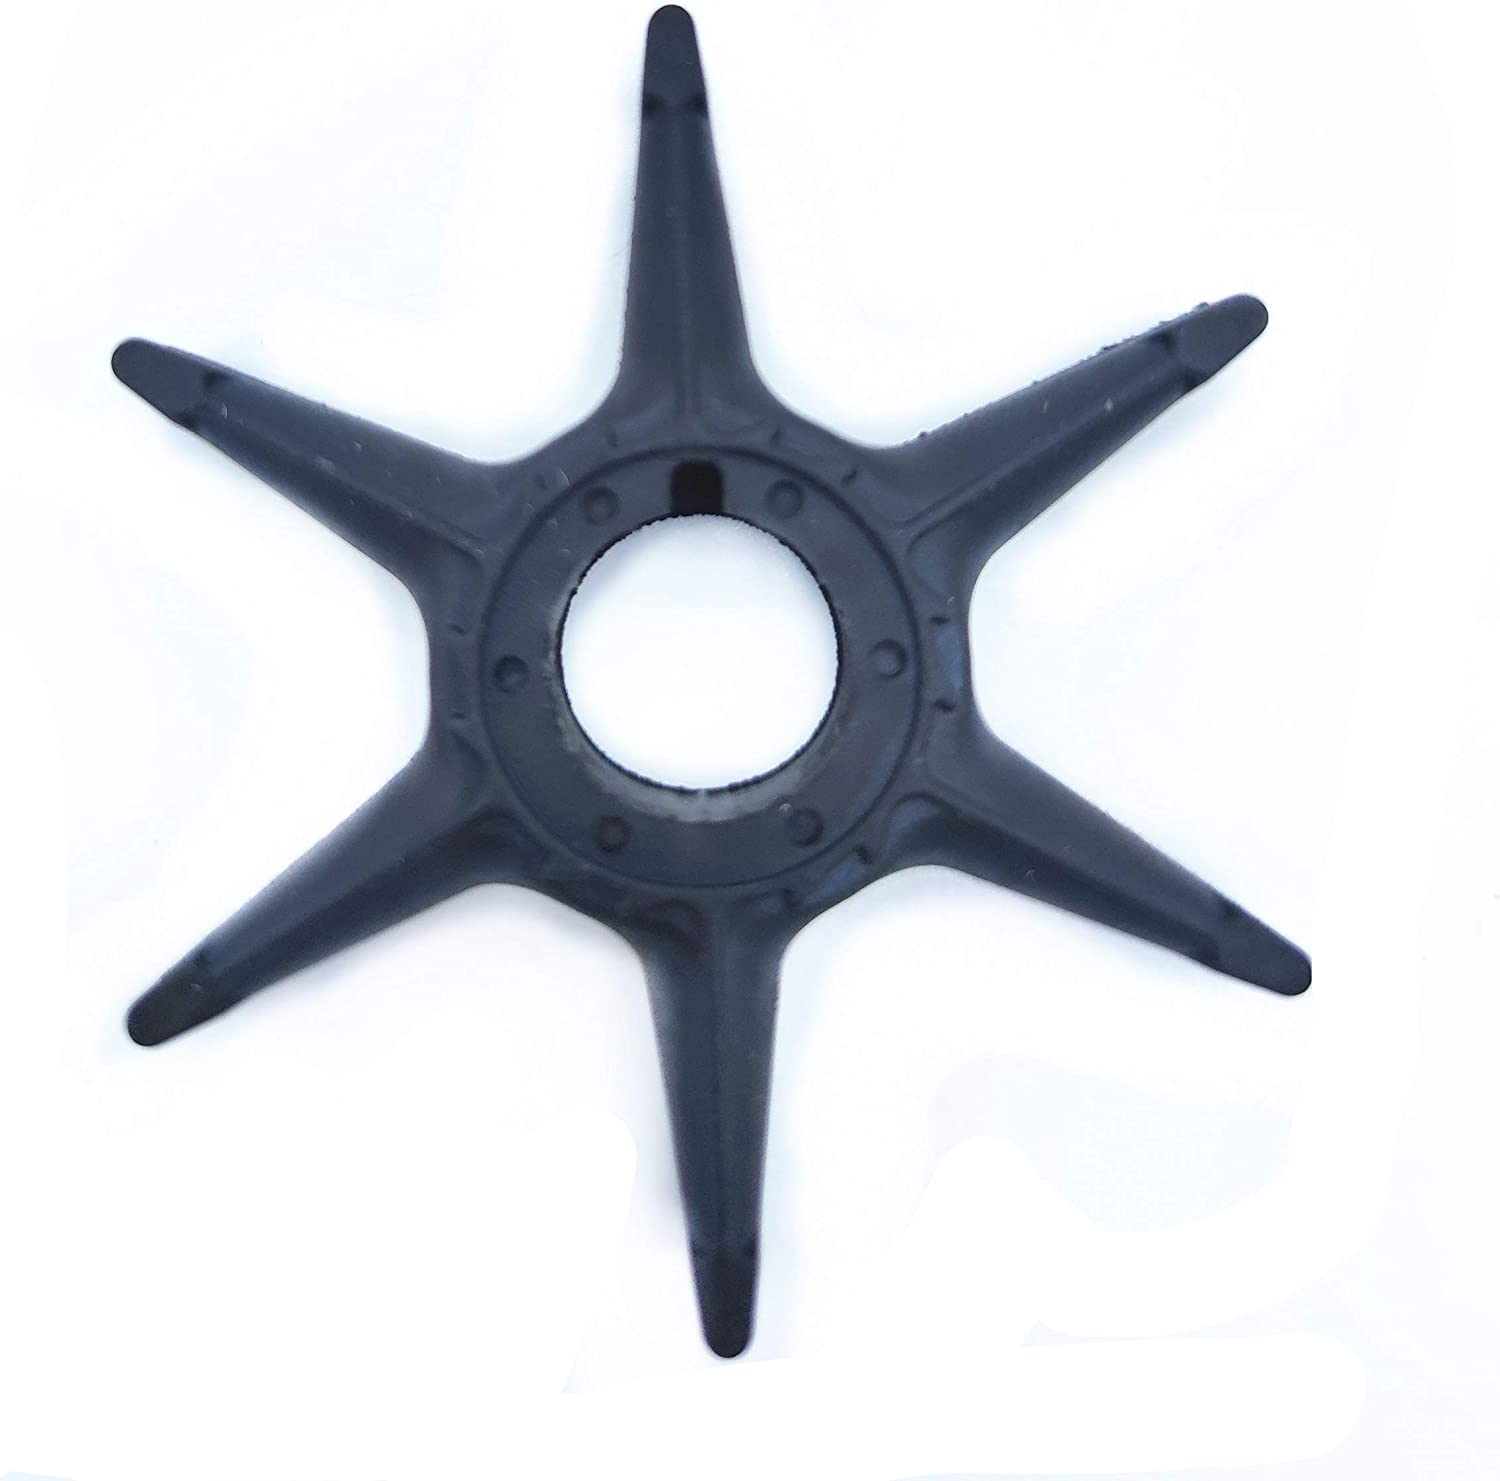 Jetunit for Yamaha Impeller Outboard 689-44352-02-00 84797M 47-84797M 18-3067 2-stroke 2cyl 20hp 25hp 30hp